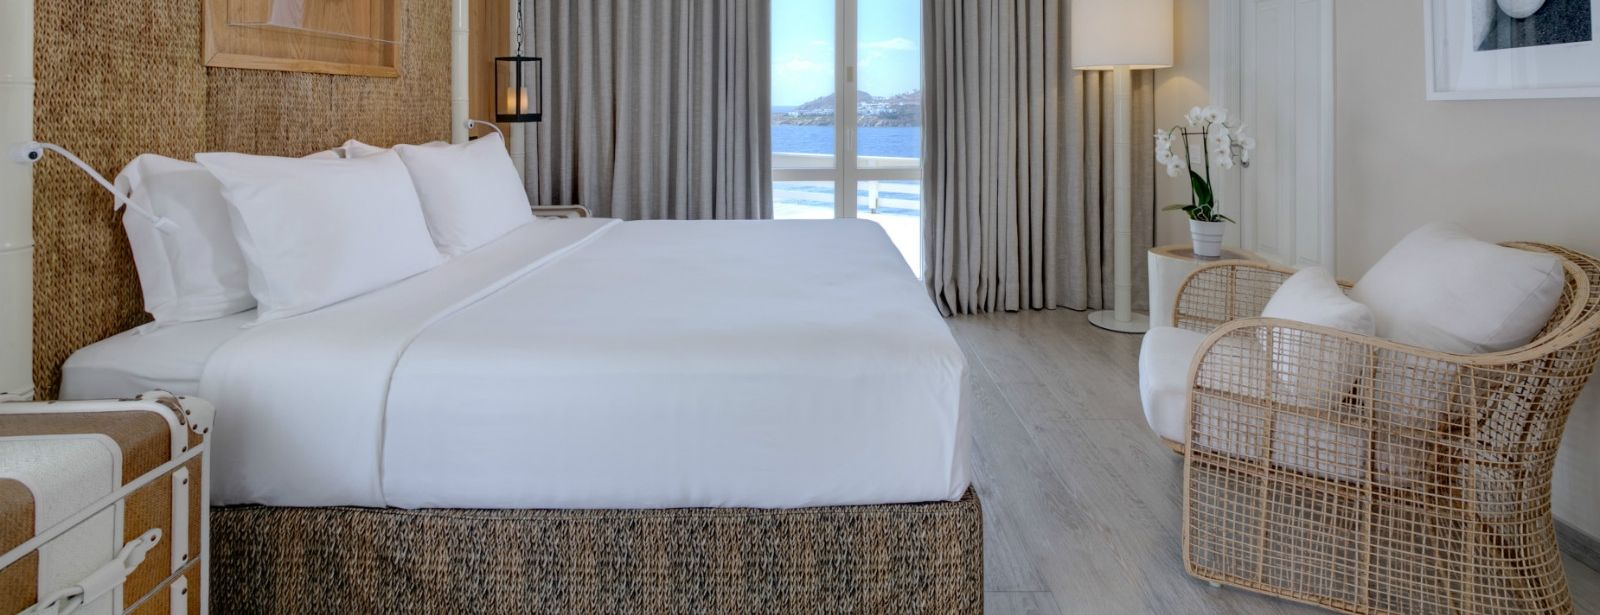 Superior Seaview Room Santa Marina hotel mykonos greece